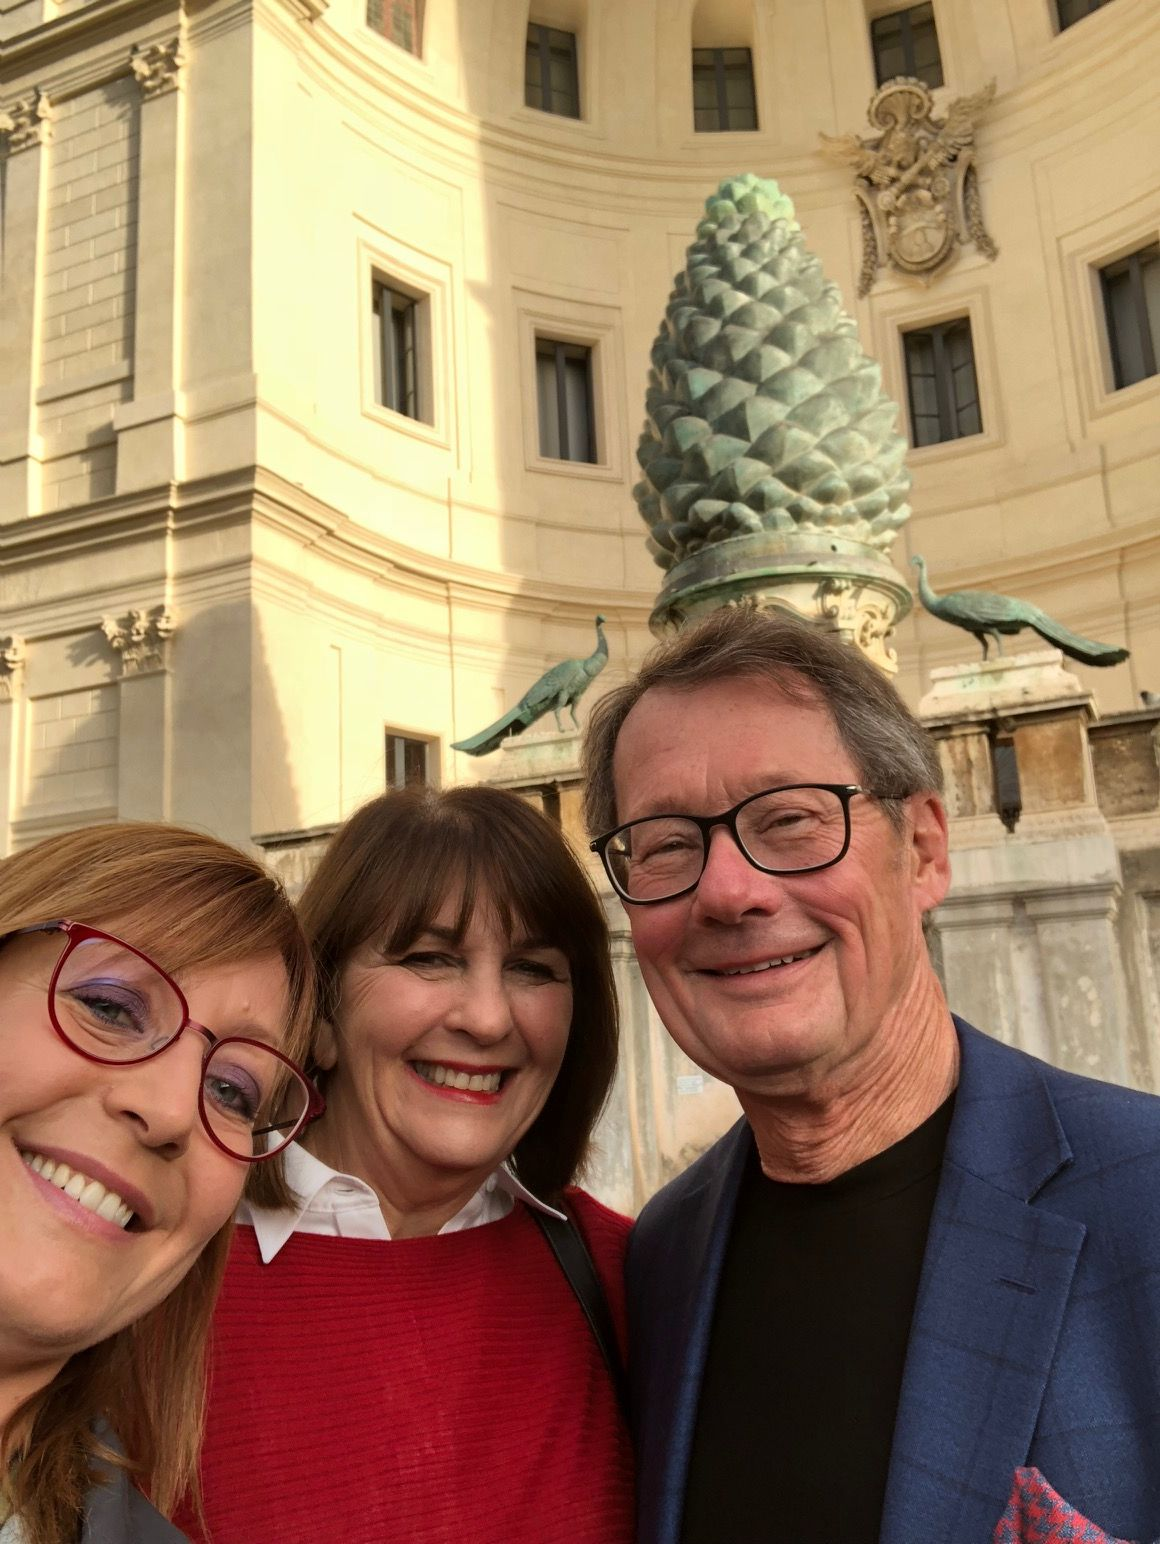 Our Guide Francesca Took This Selfie With Our Clients In